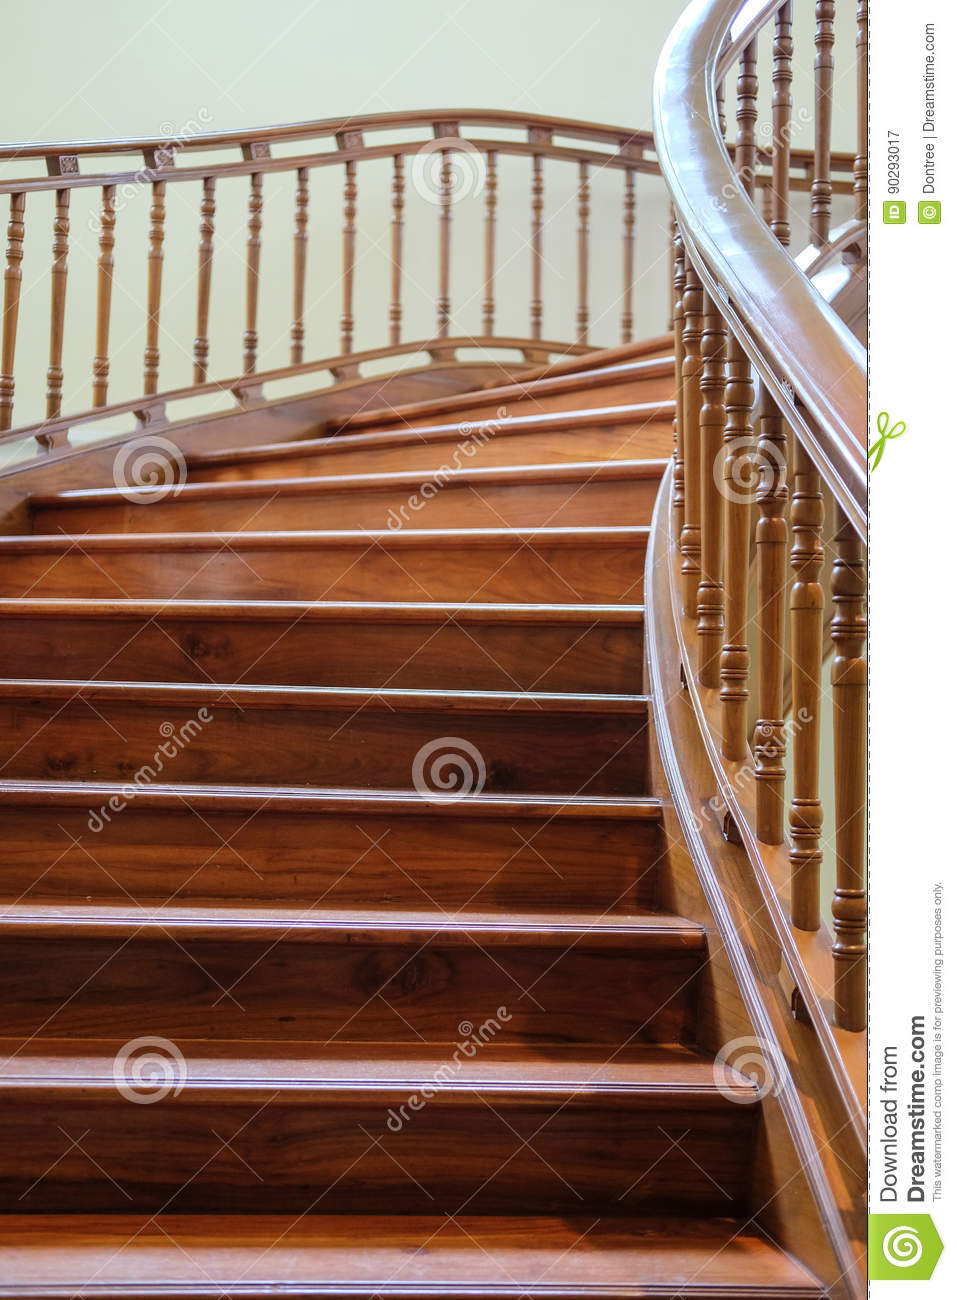 Room Construction Design: Building Interior Empty Room Design Staircase Wooden Stock